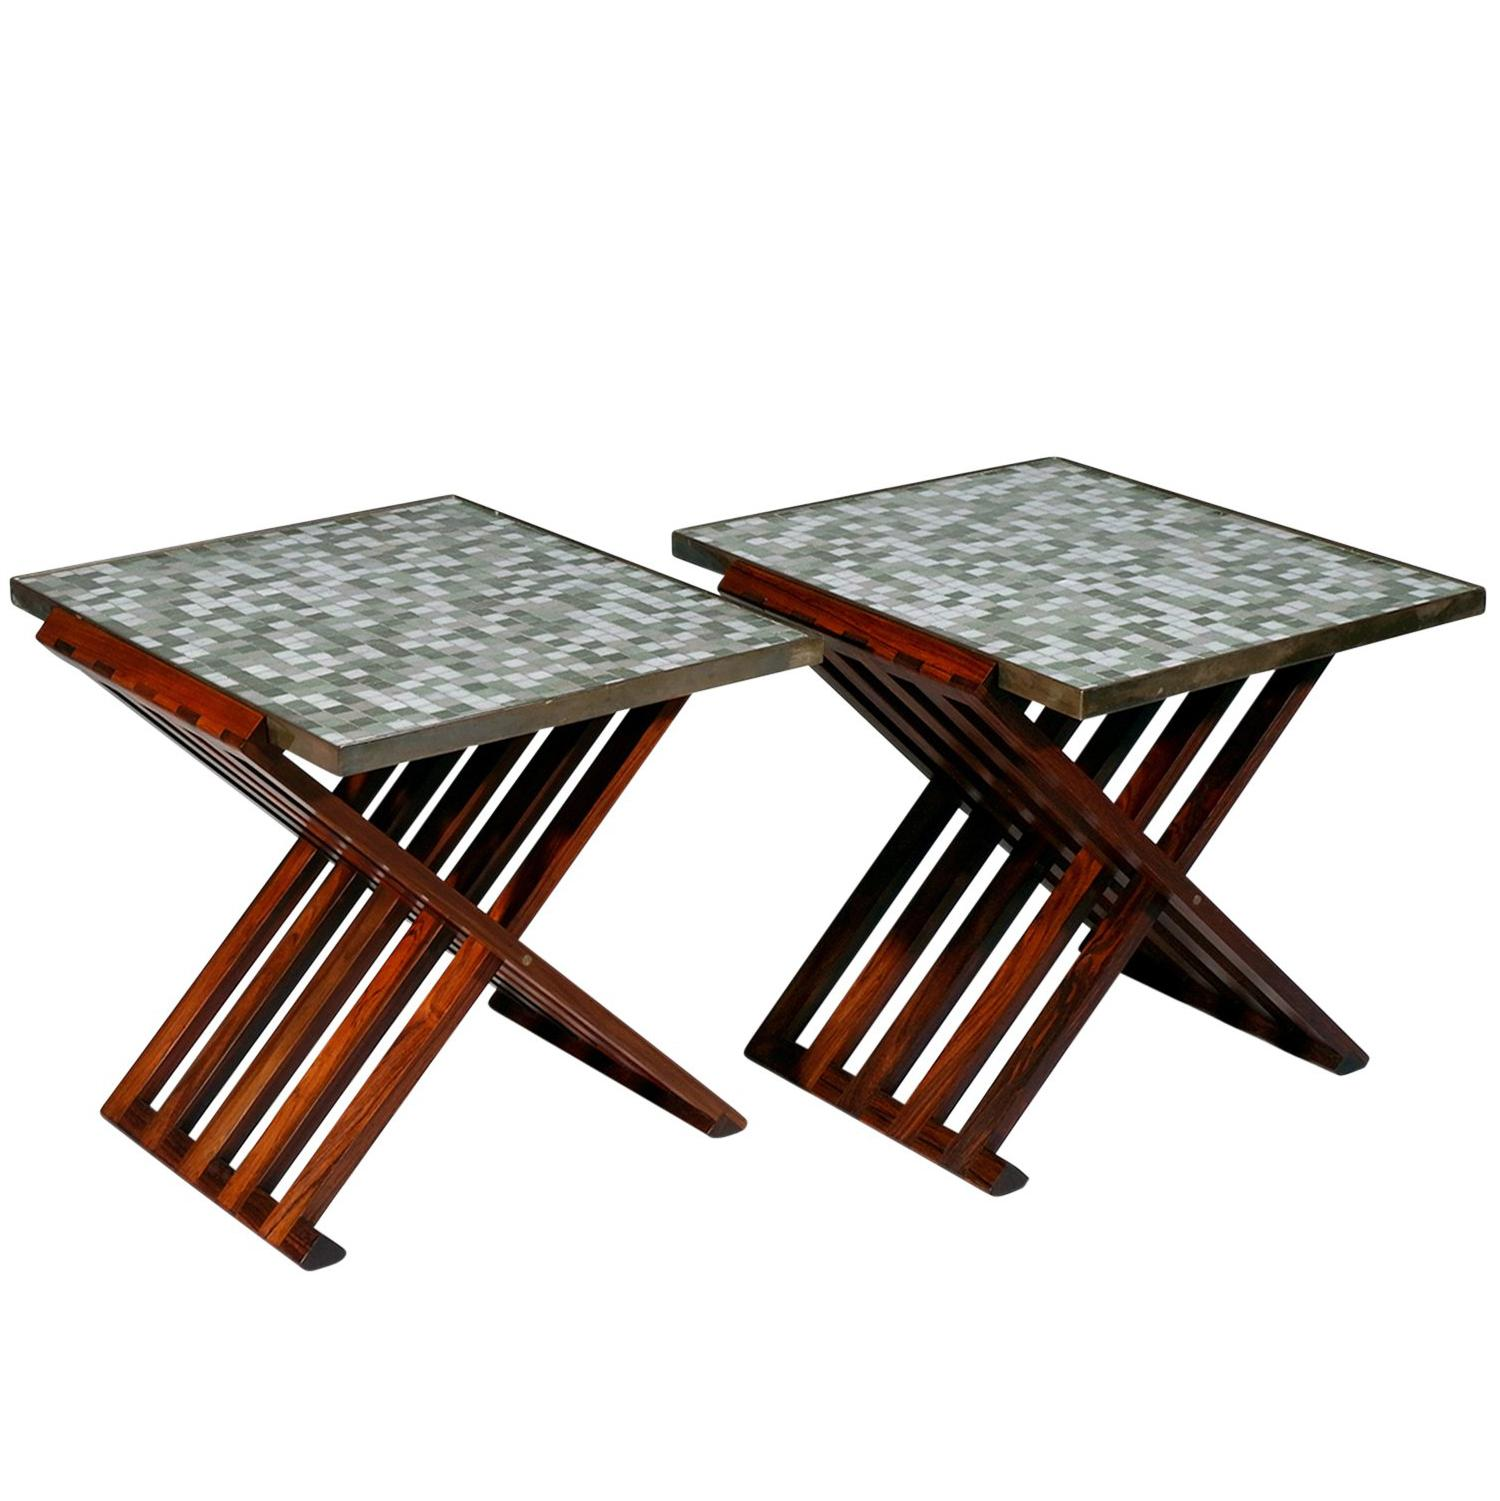 Pair of Folding Side Tables by Dunbar